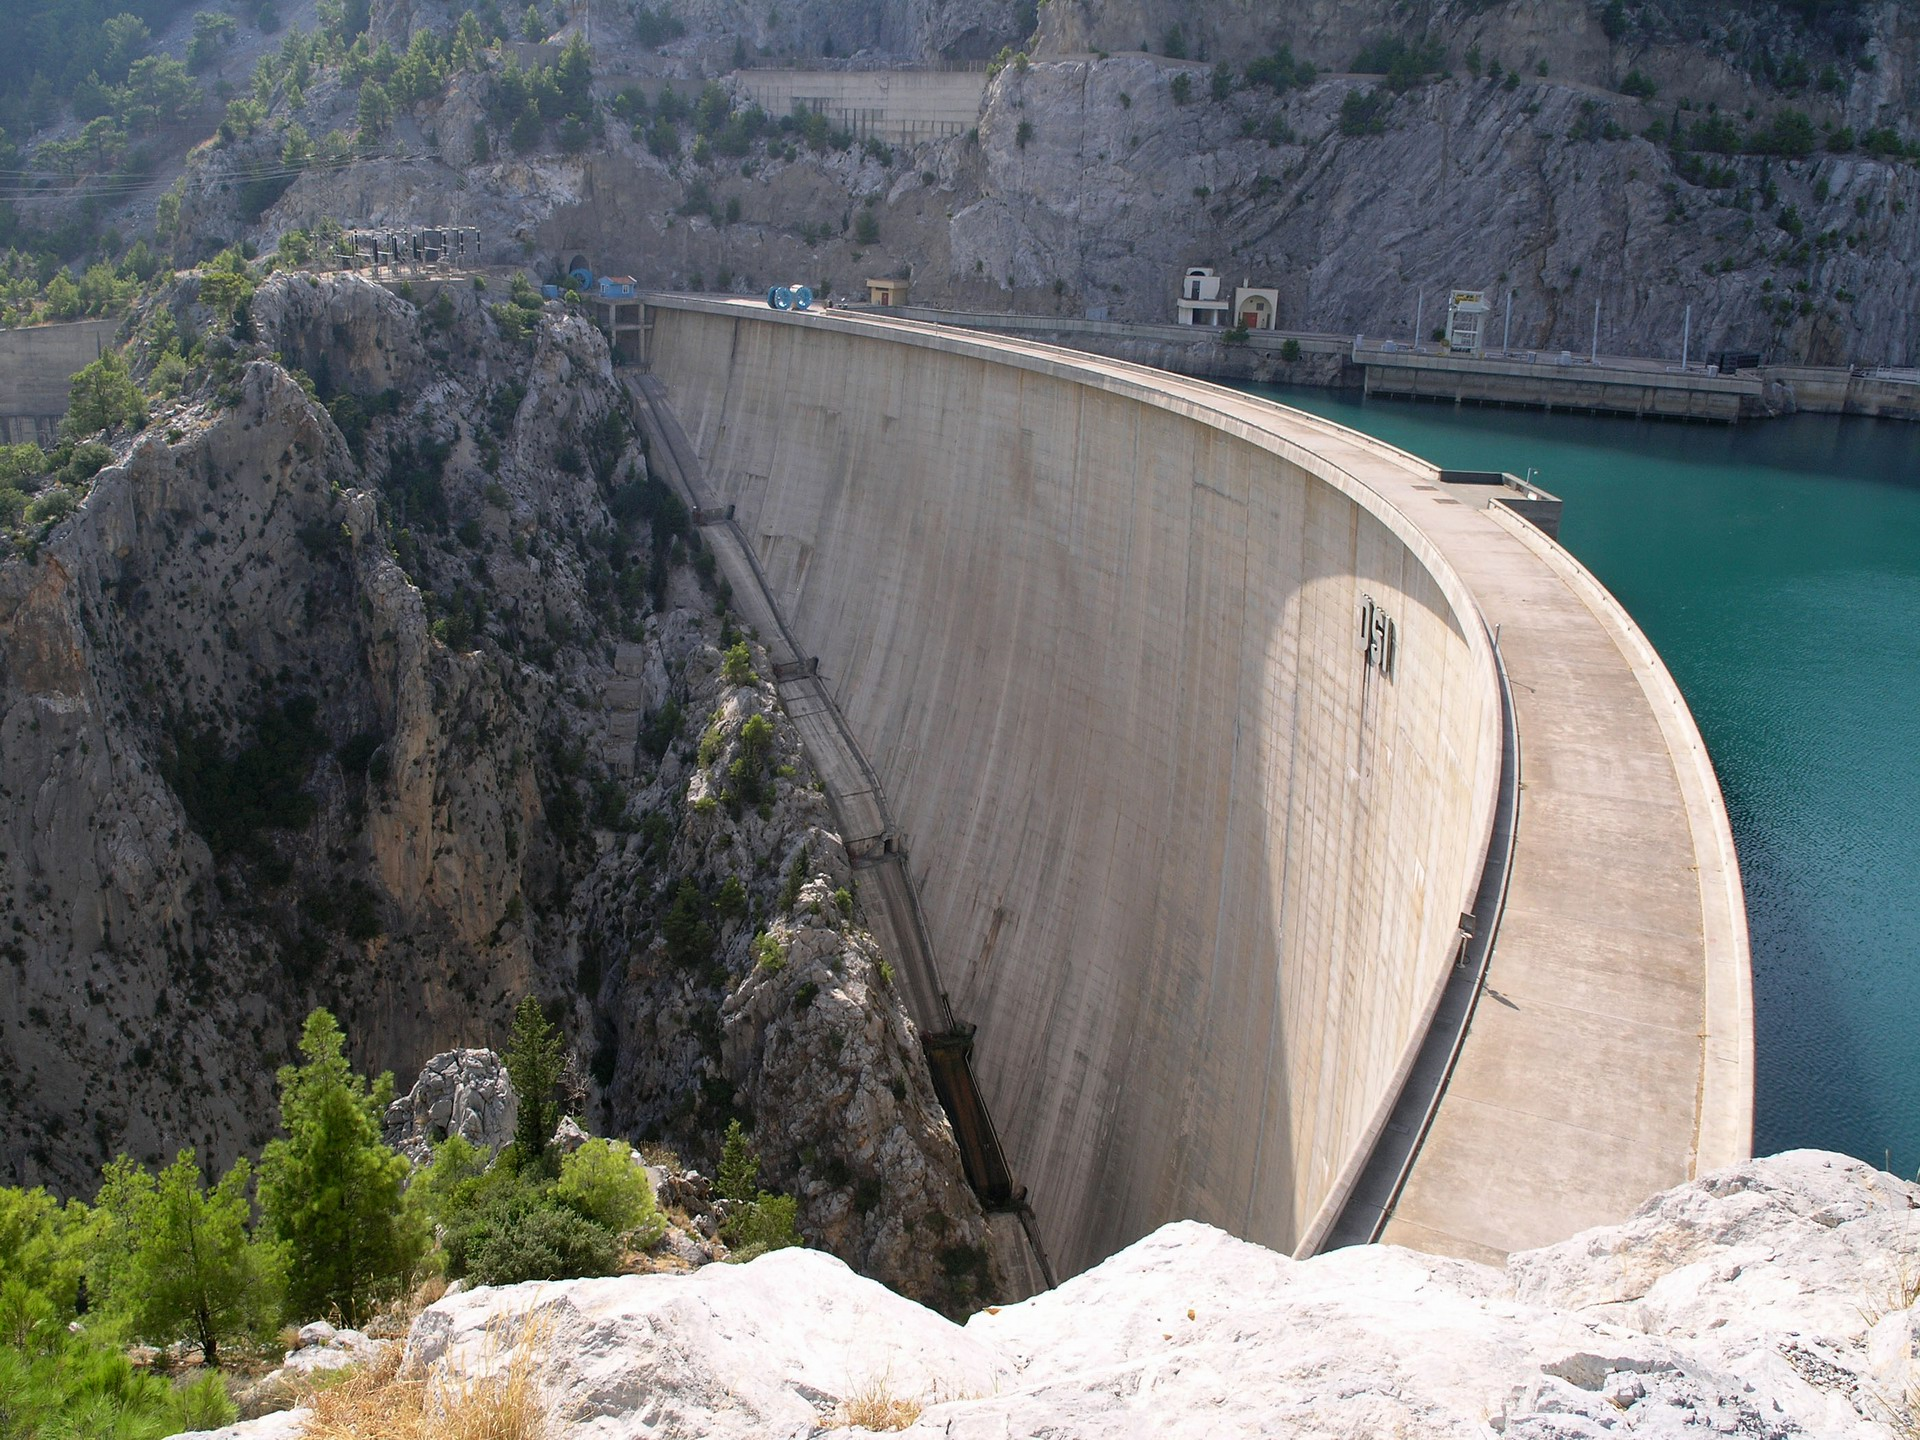 66 Dam Pictures Which Are A Piece of Engineering Marvel